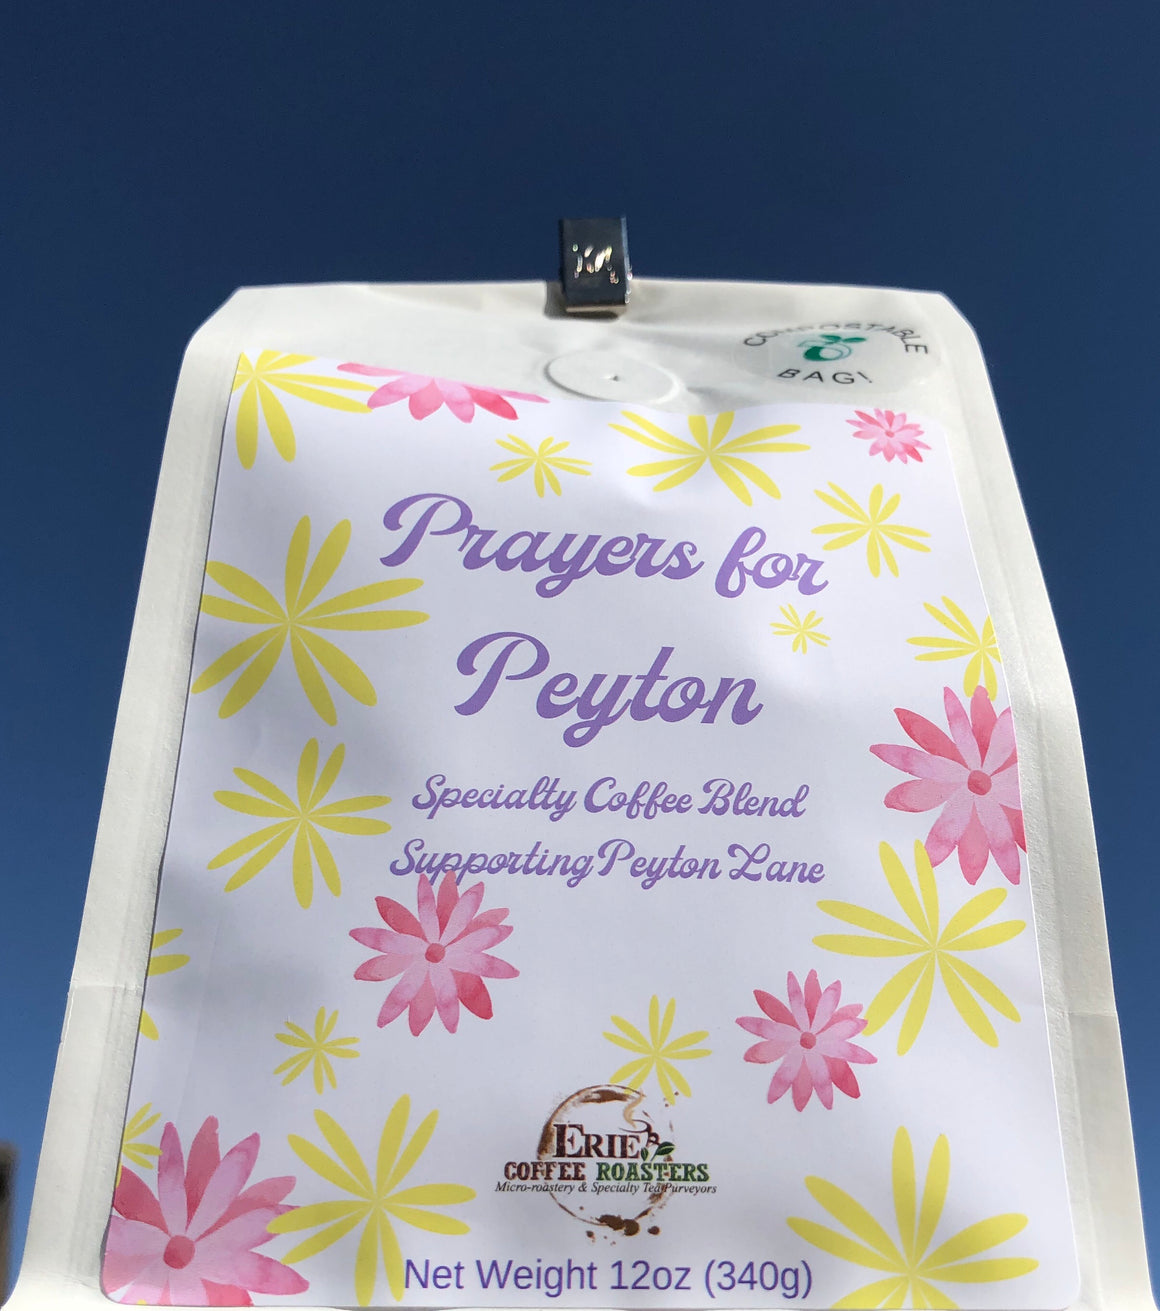 Prayers for Peyton